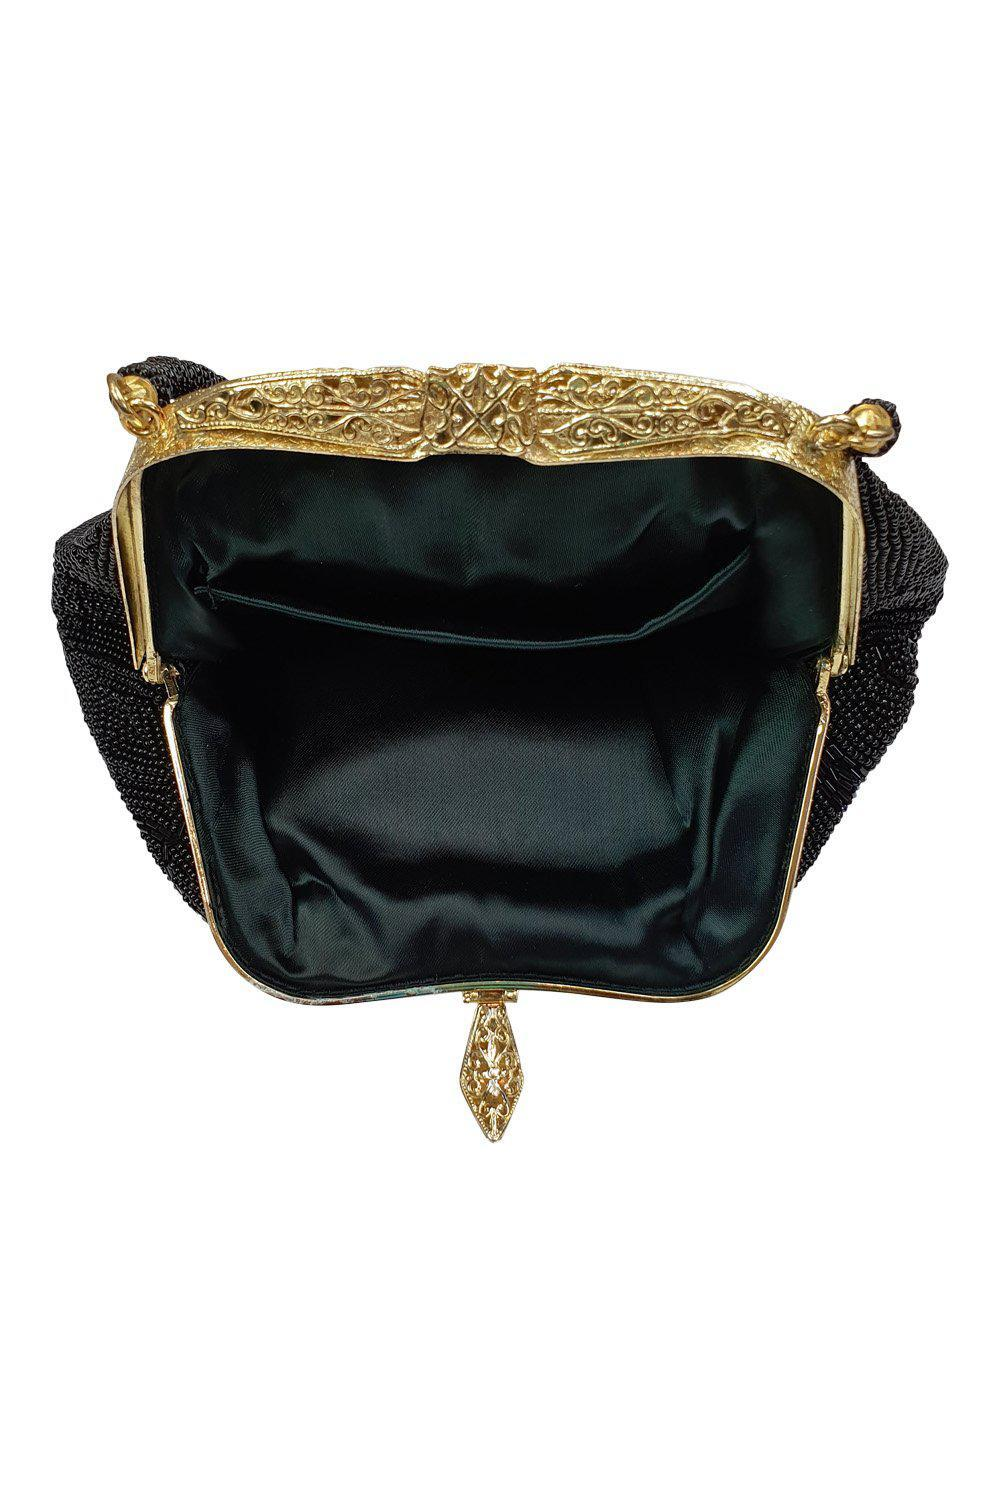 VINTAGE 1980s 1990s Flapper Style Black Beaded Satin Lined Evening Purse (S)-Unbranded-The Freperie